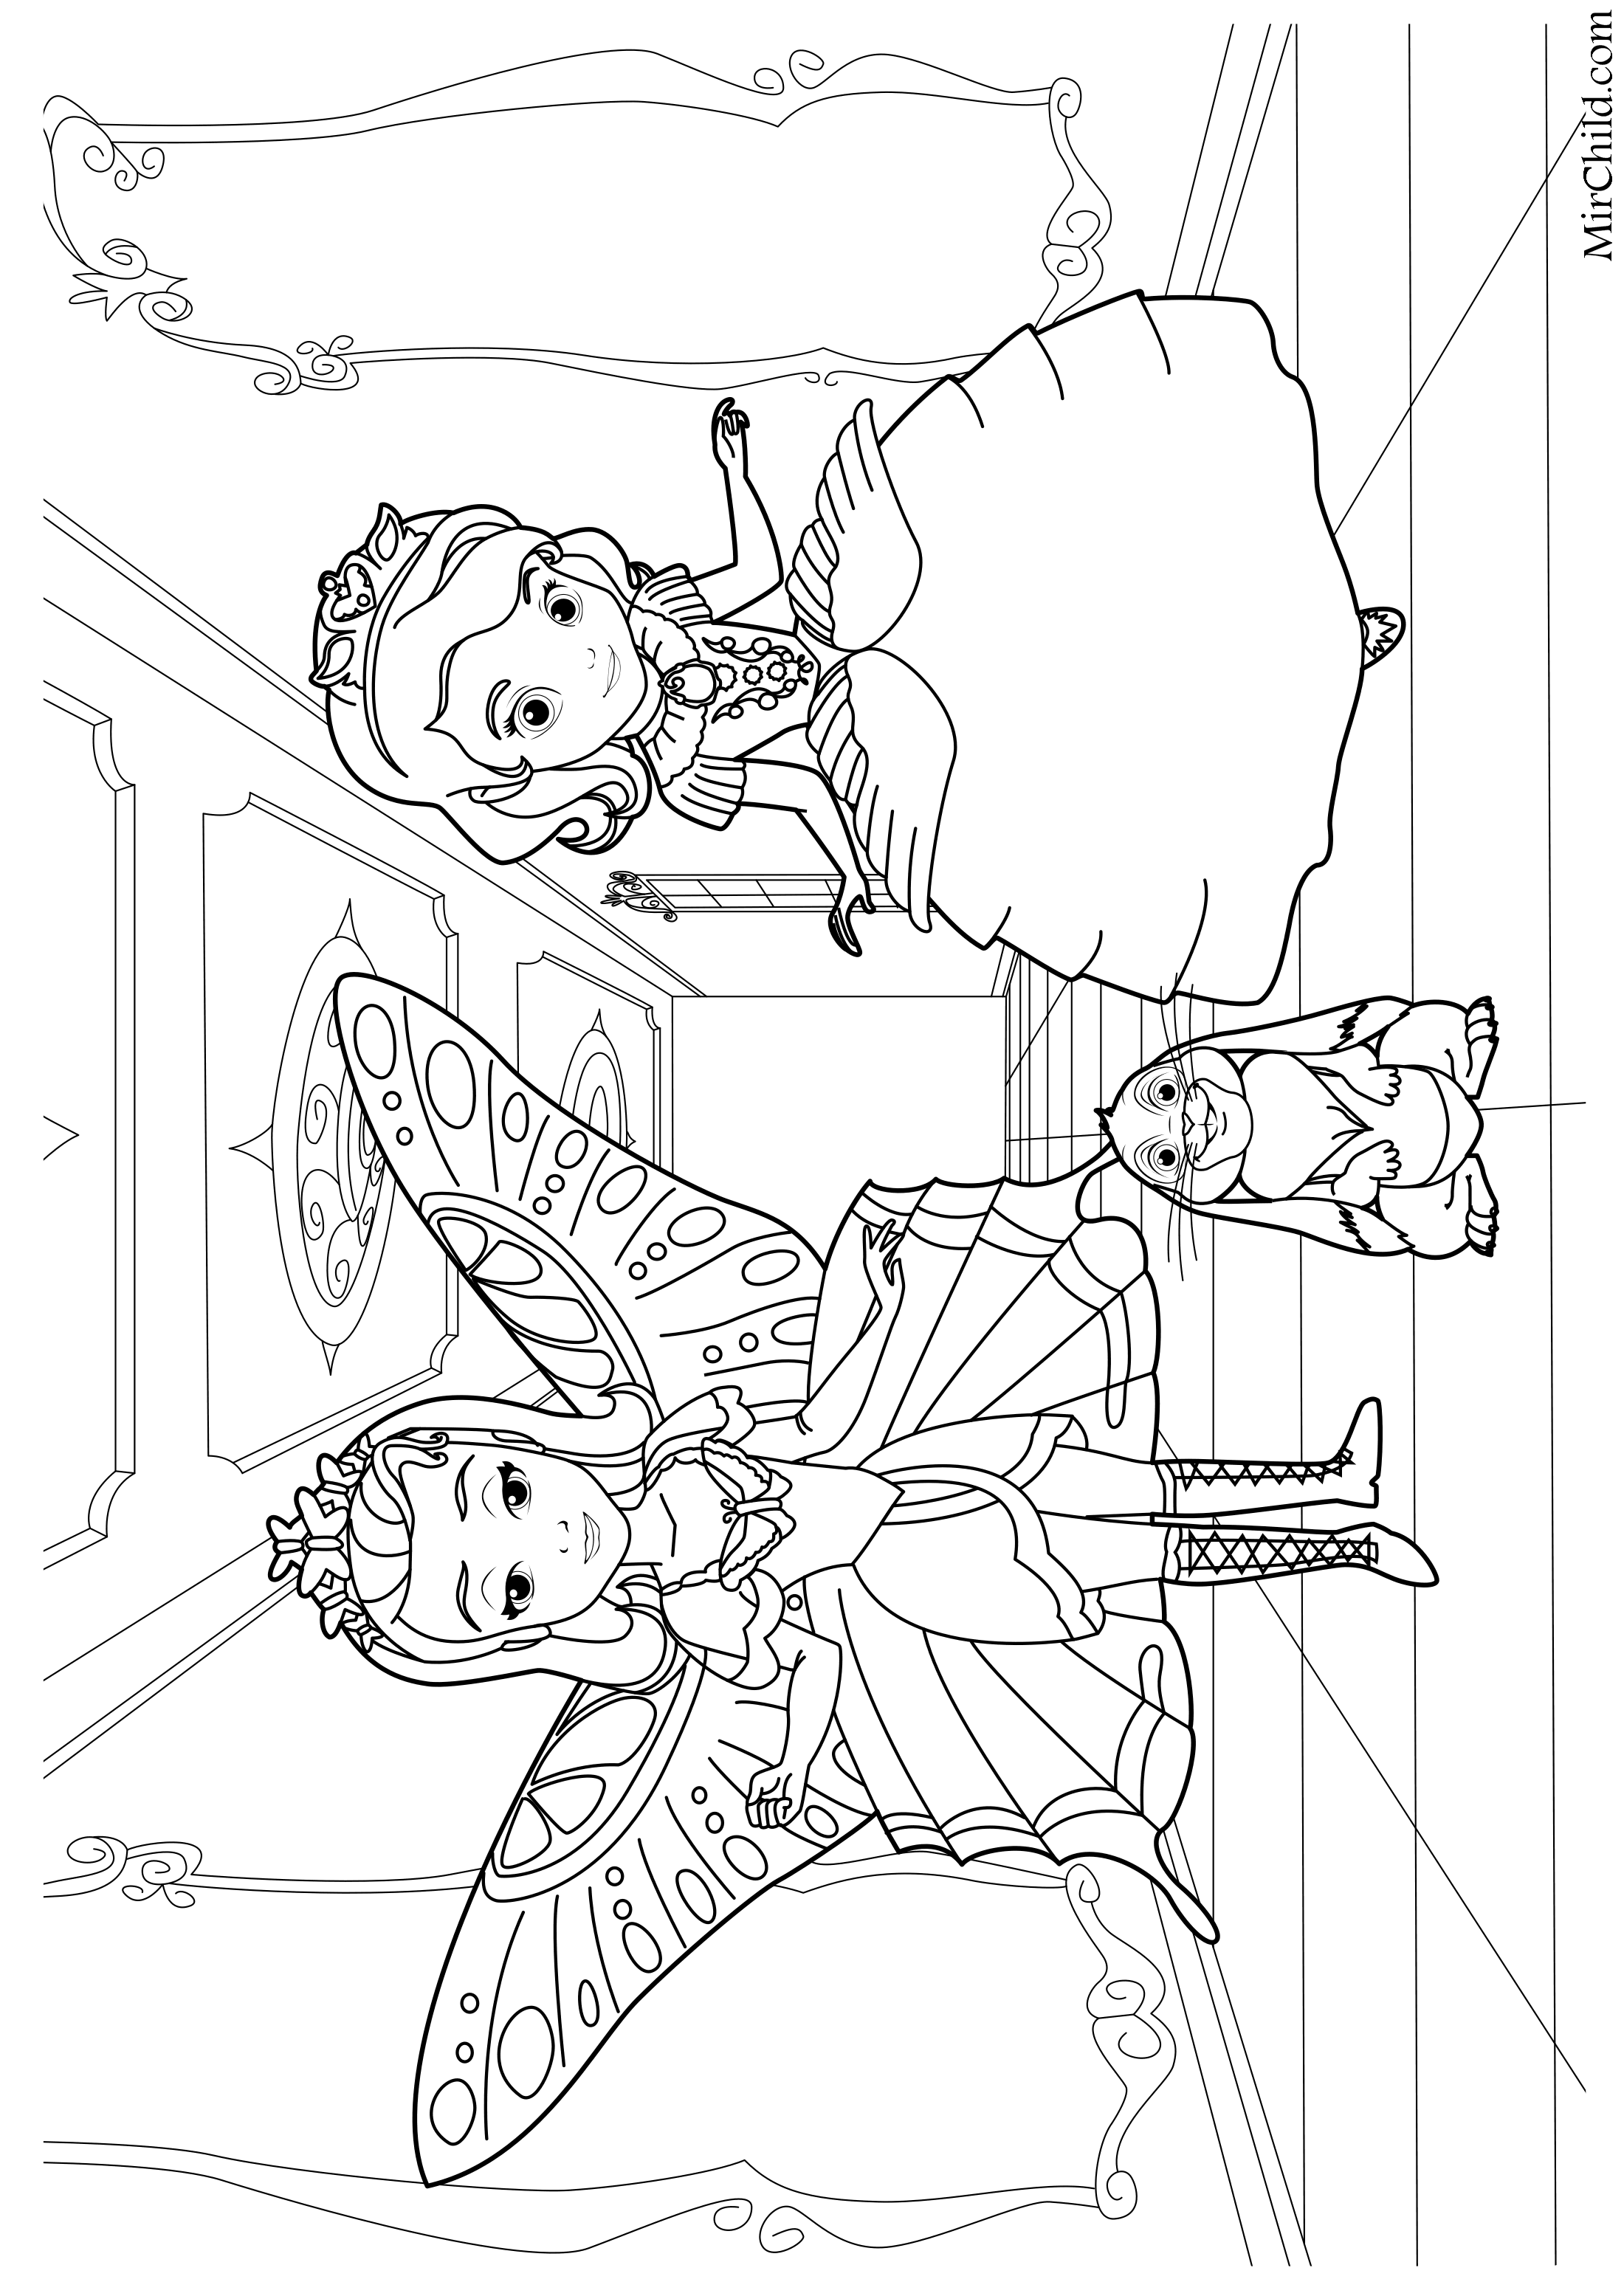 Coloring pages elena avalor sketch coloring page for Elena of avalor coloring pages